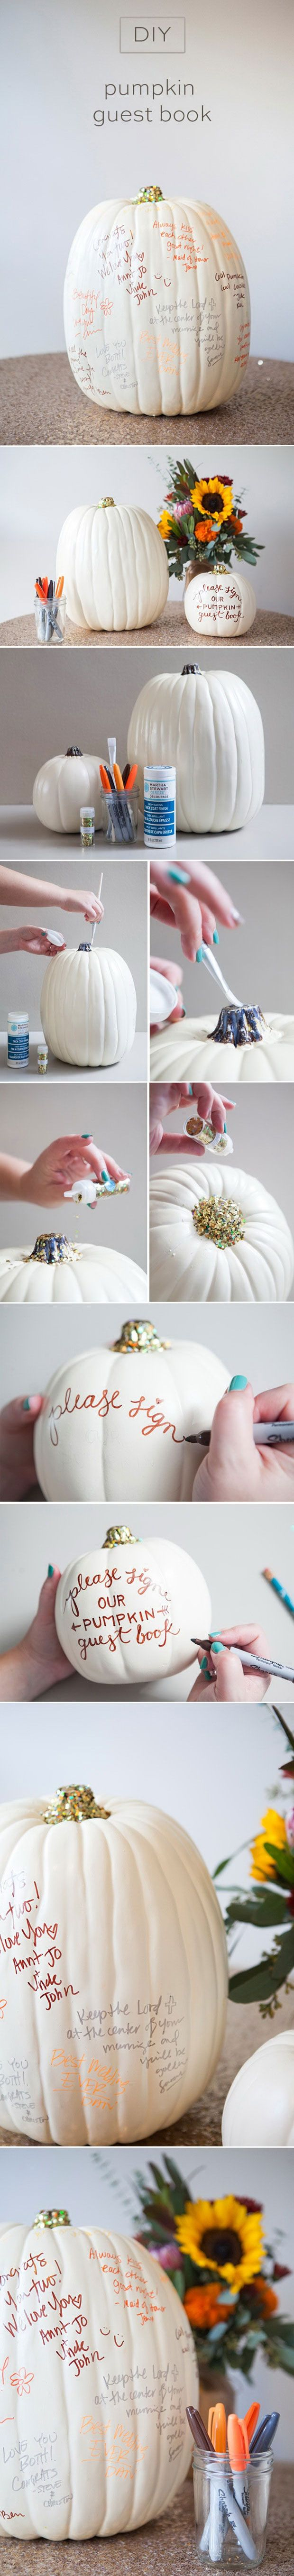 DIY wedding pumpkin guest book ideas for fall